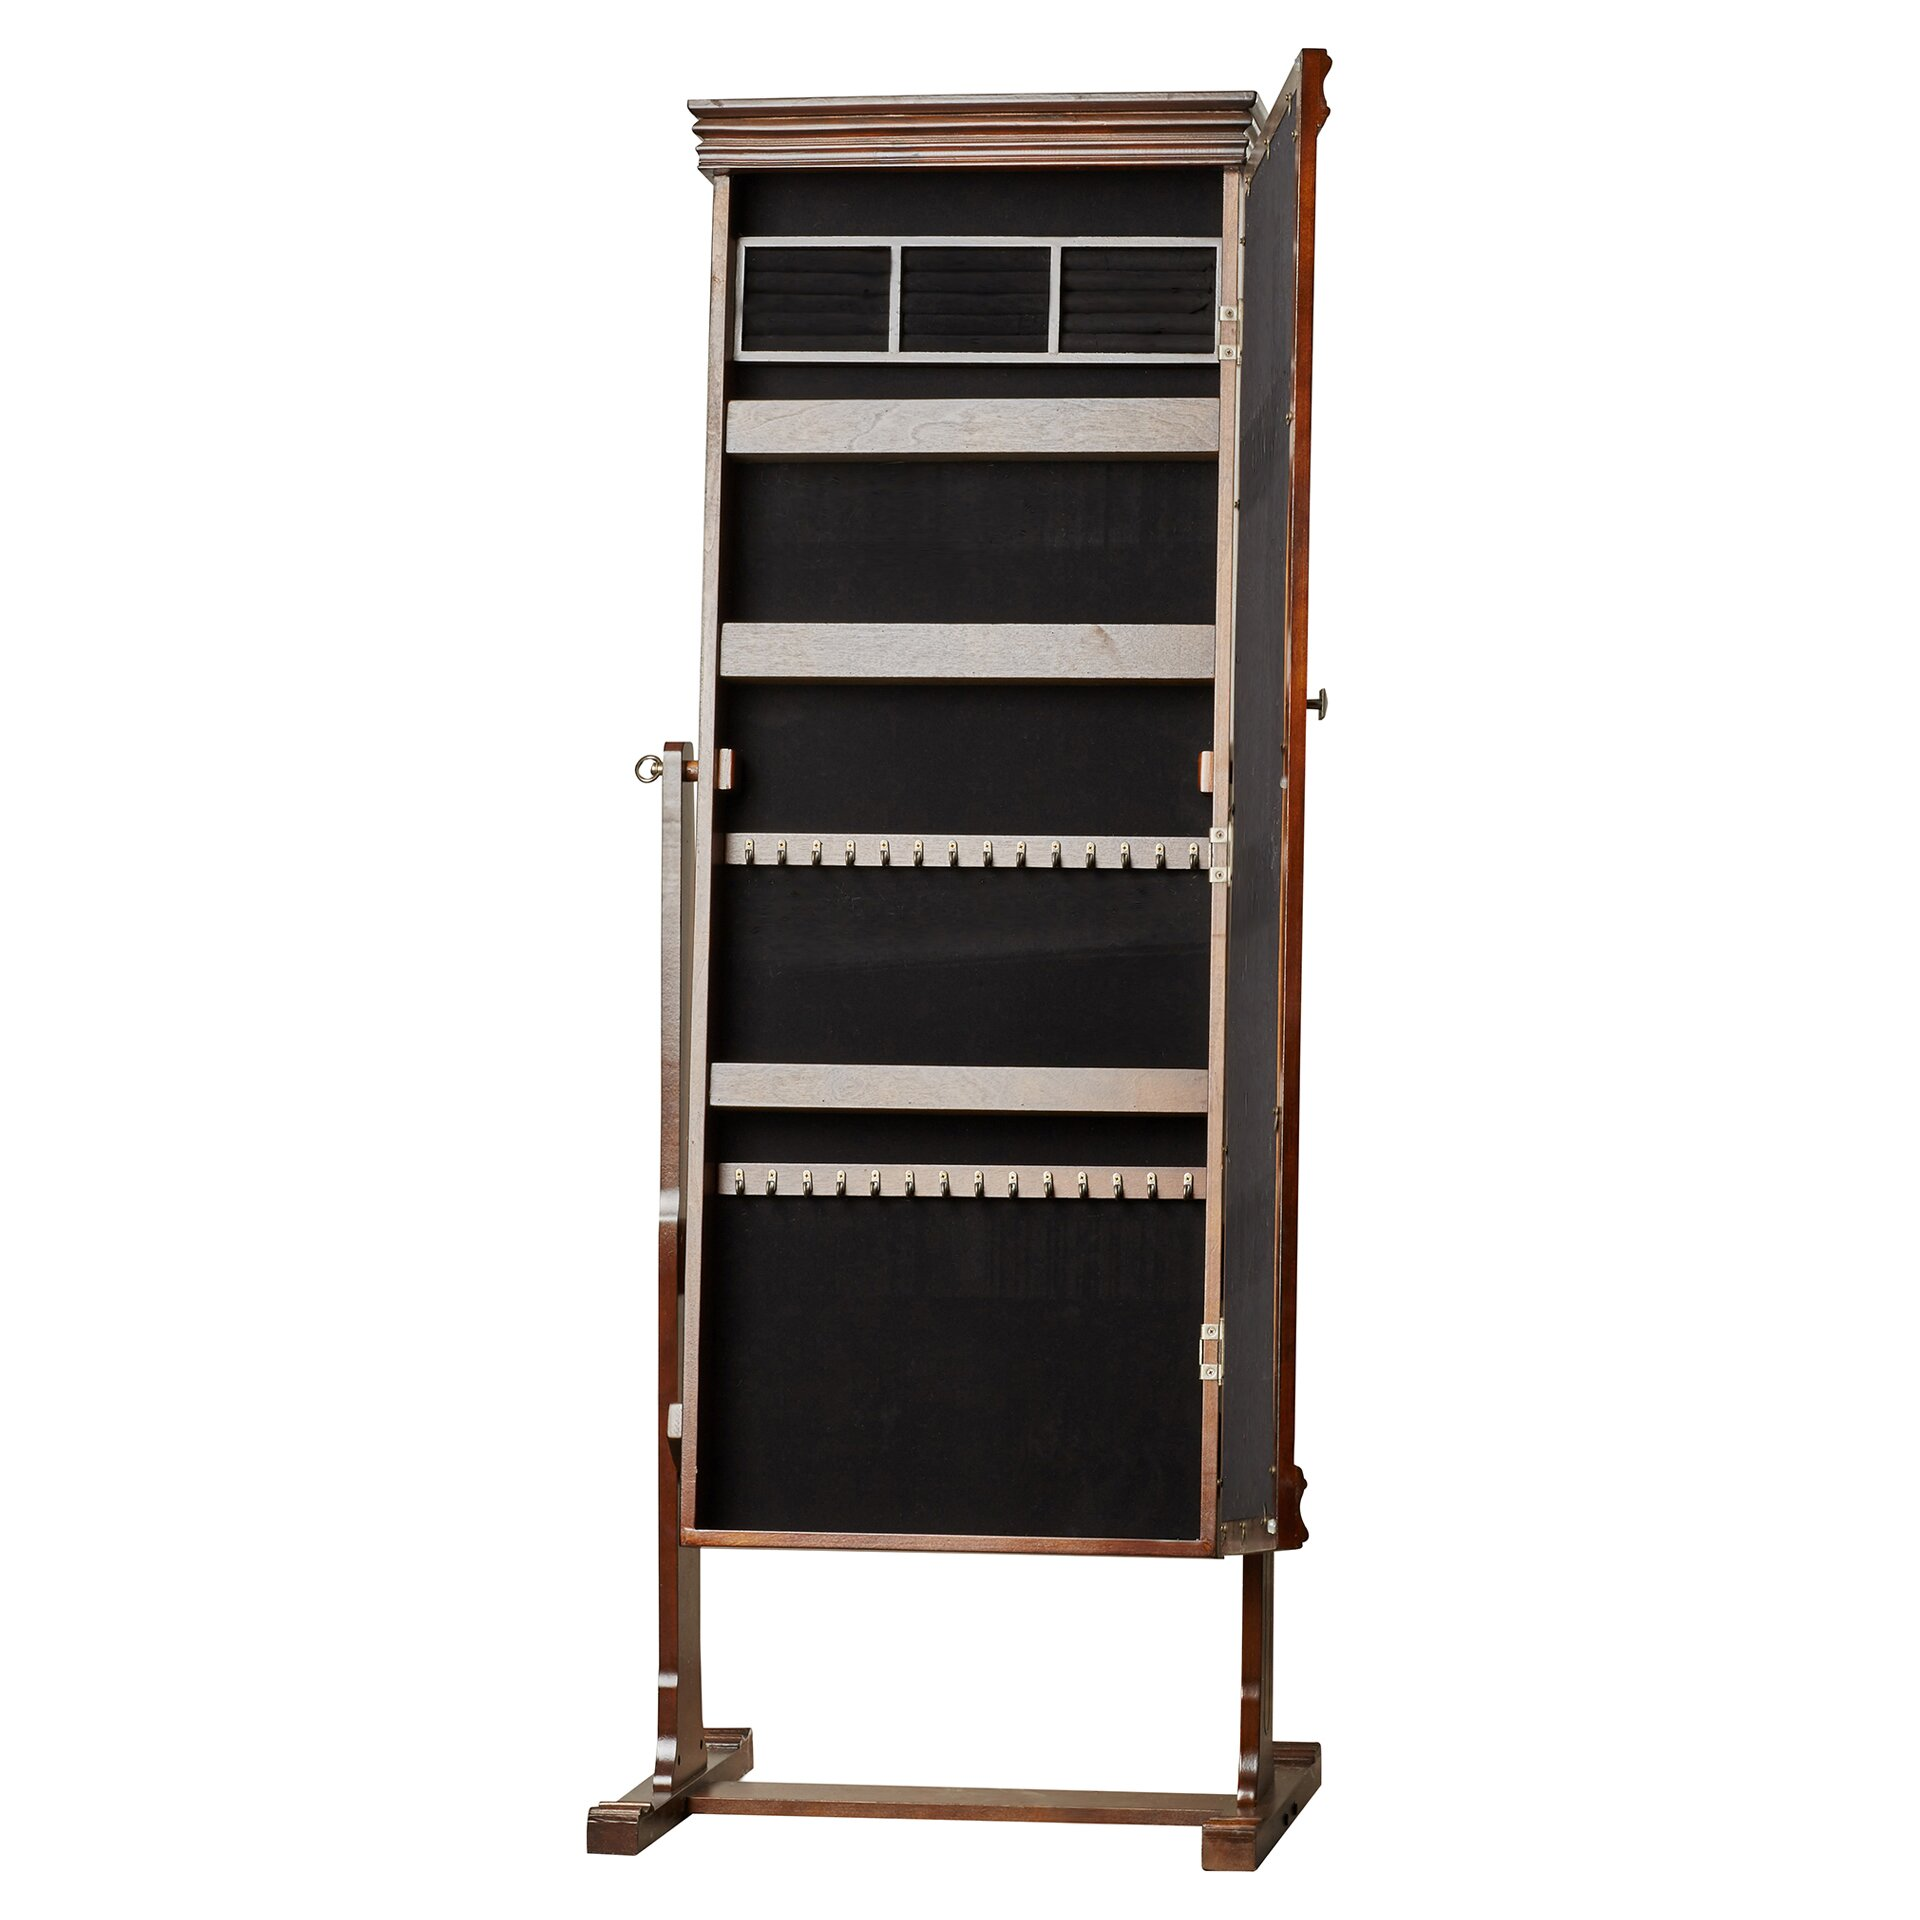 Cheval Mirror Jewelry Armoire Jcpenney Jewelry Armoire Best Jewelry Armoire Shop For And Buy